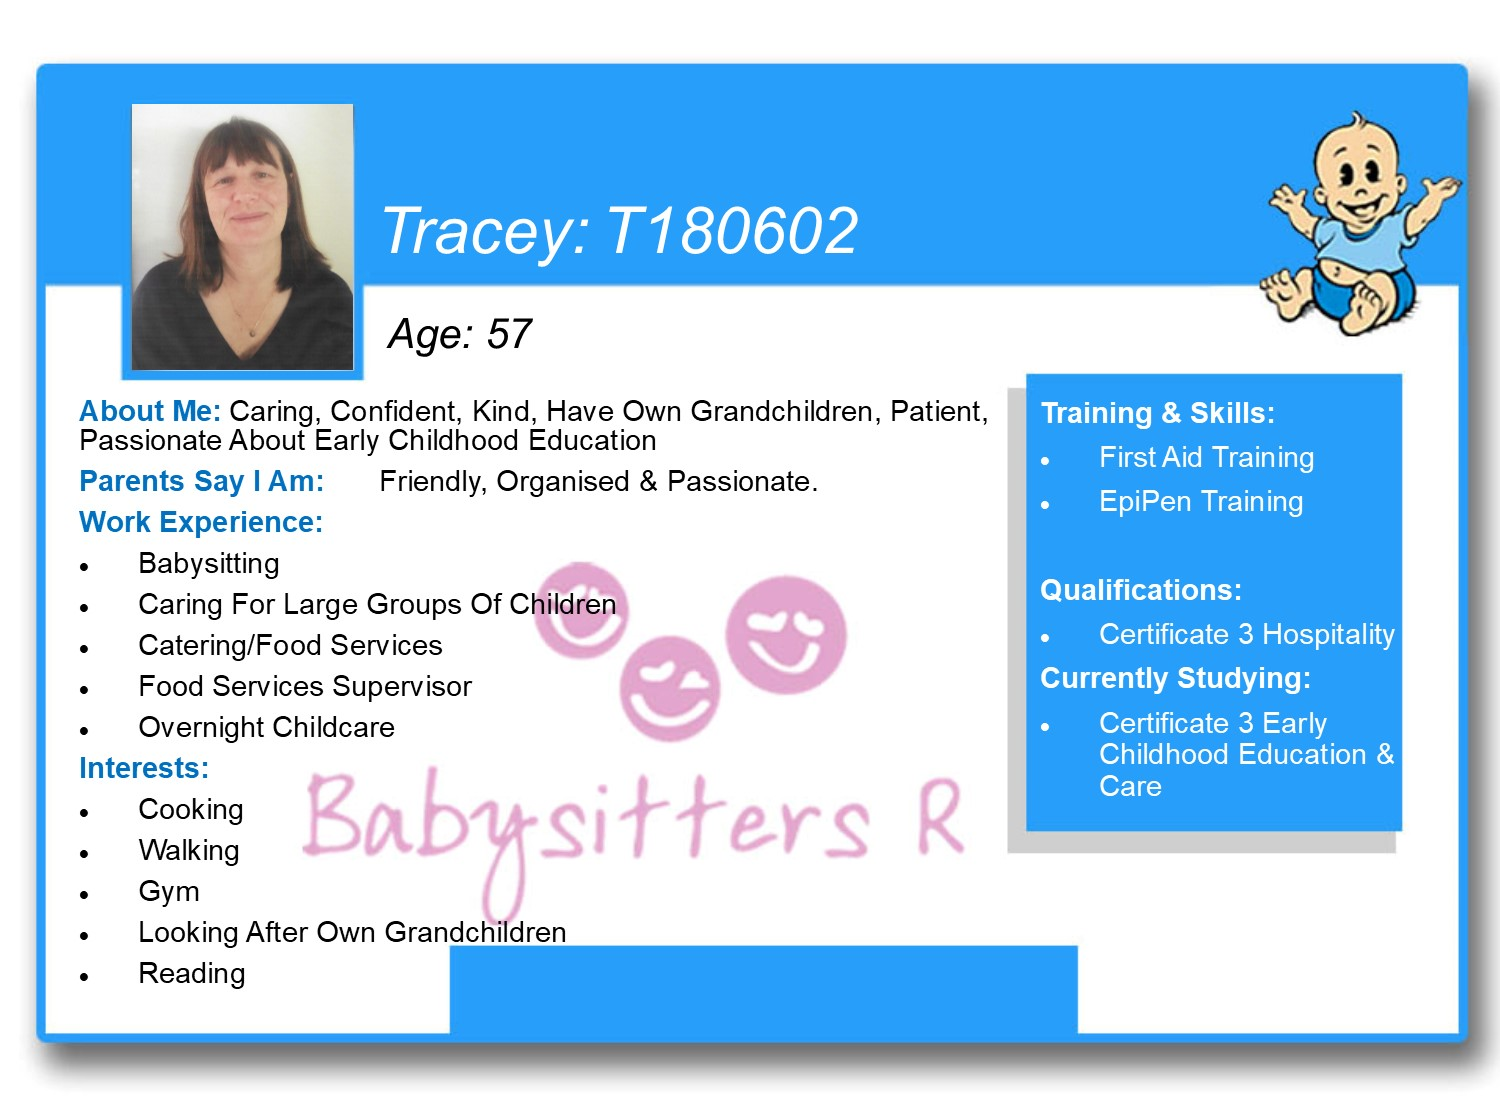 Tracey T180602